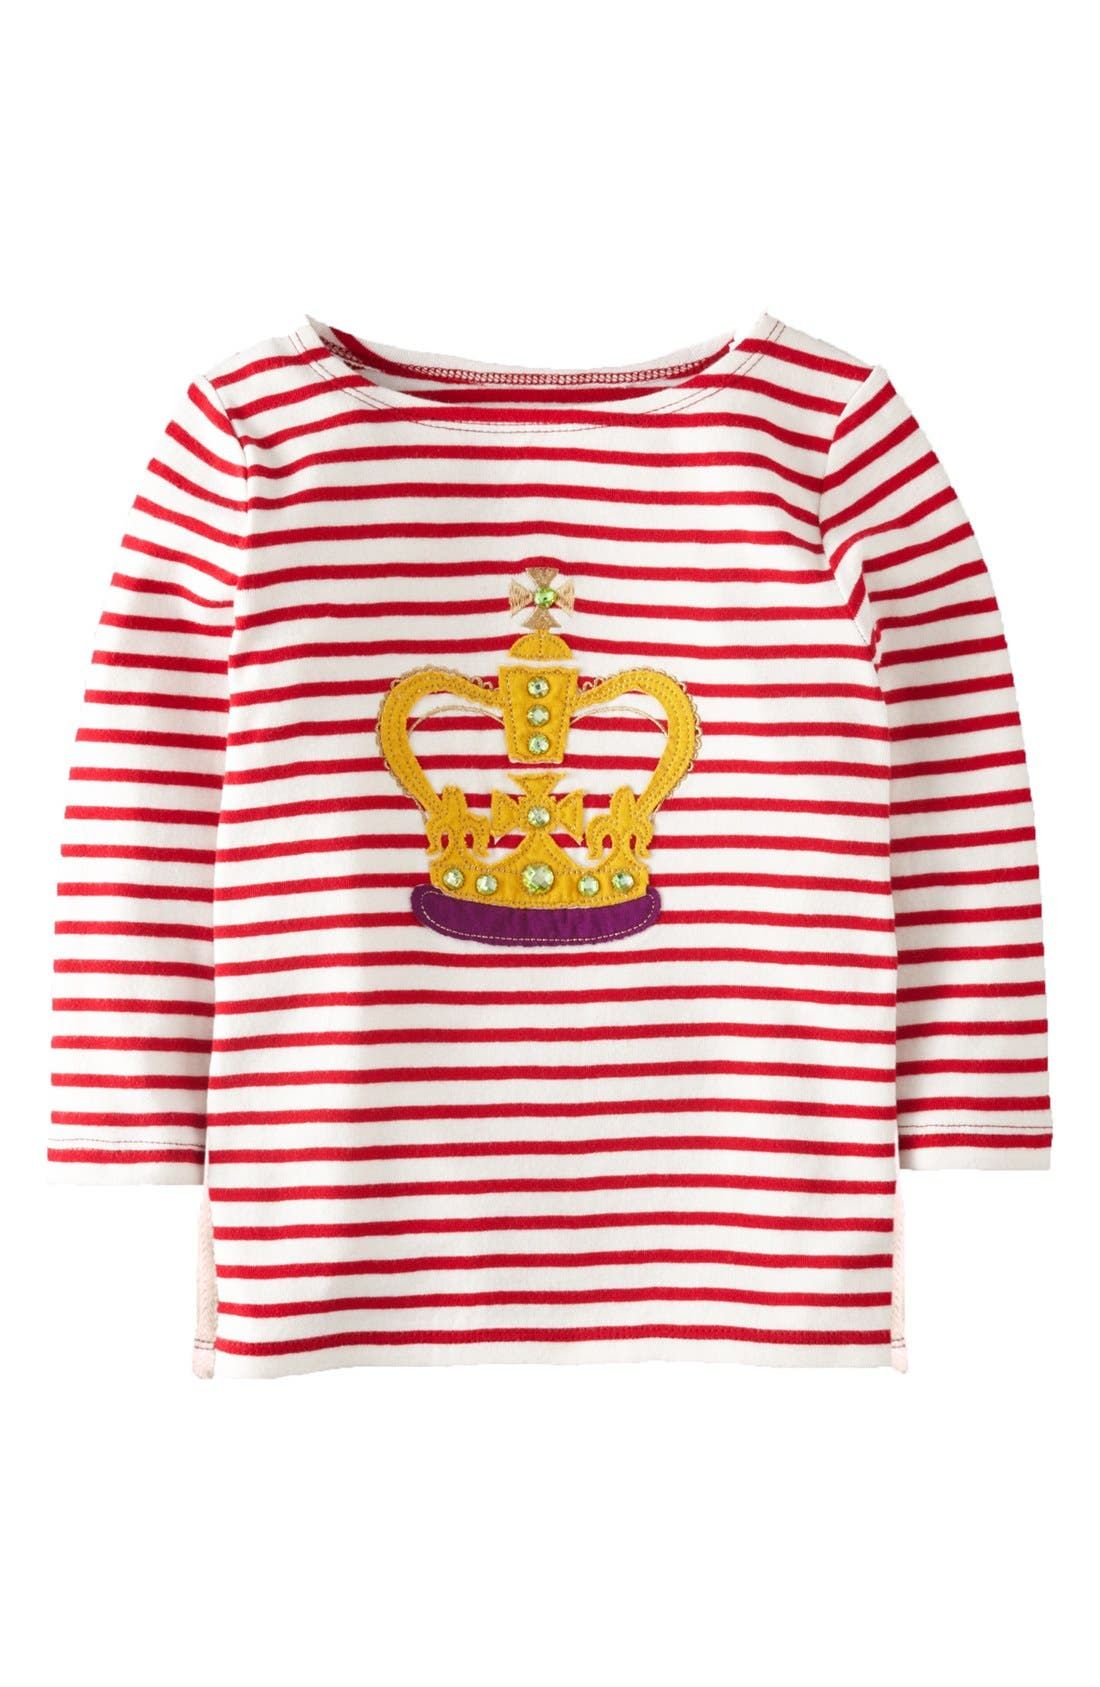 Alternate Image 1 Selected - Mini Boden 'Stripe Appliqué' Boatneck Tee (Little Girls & Big Girls)